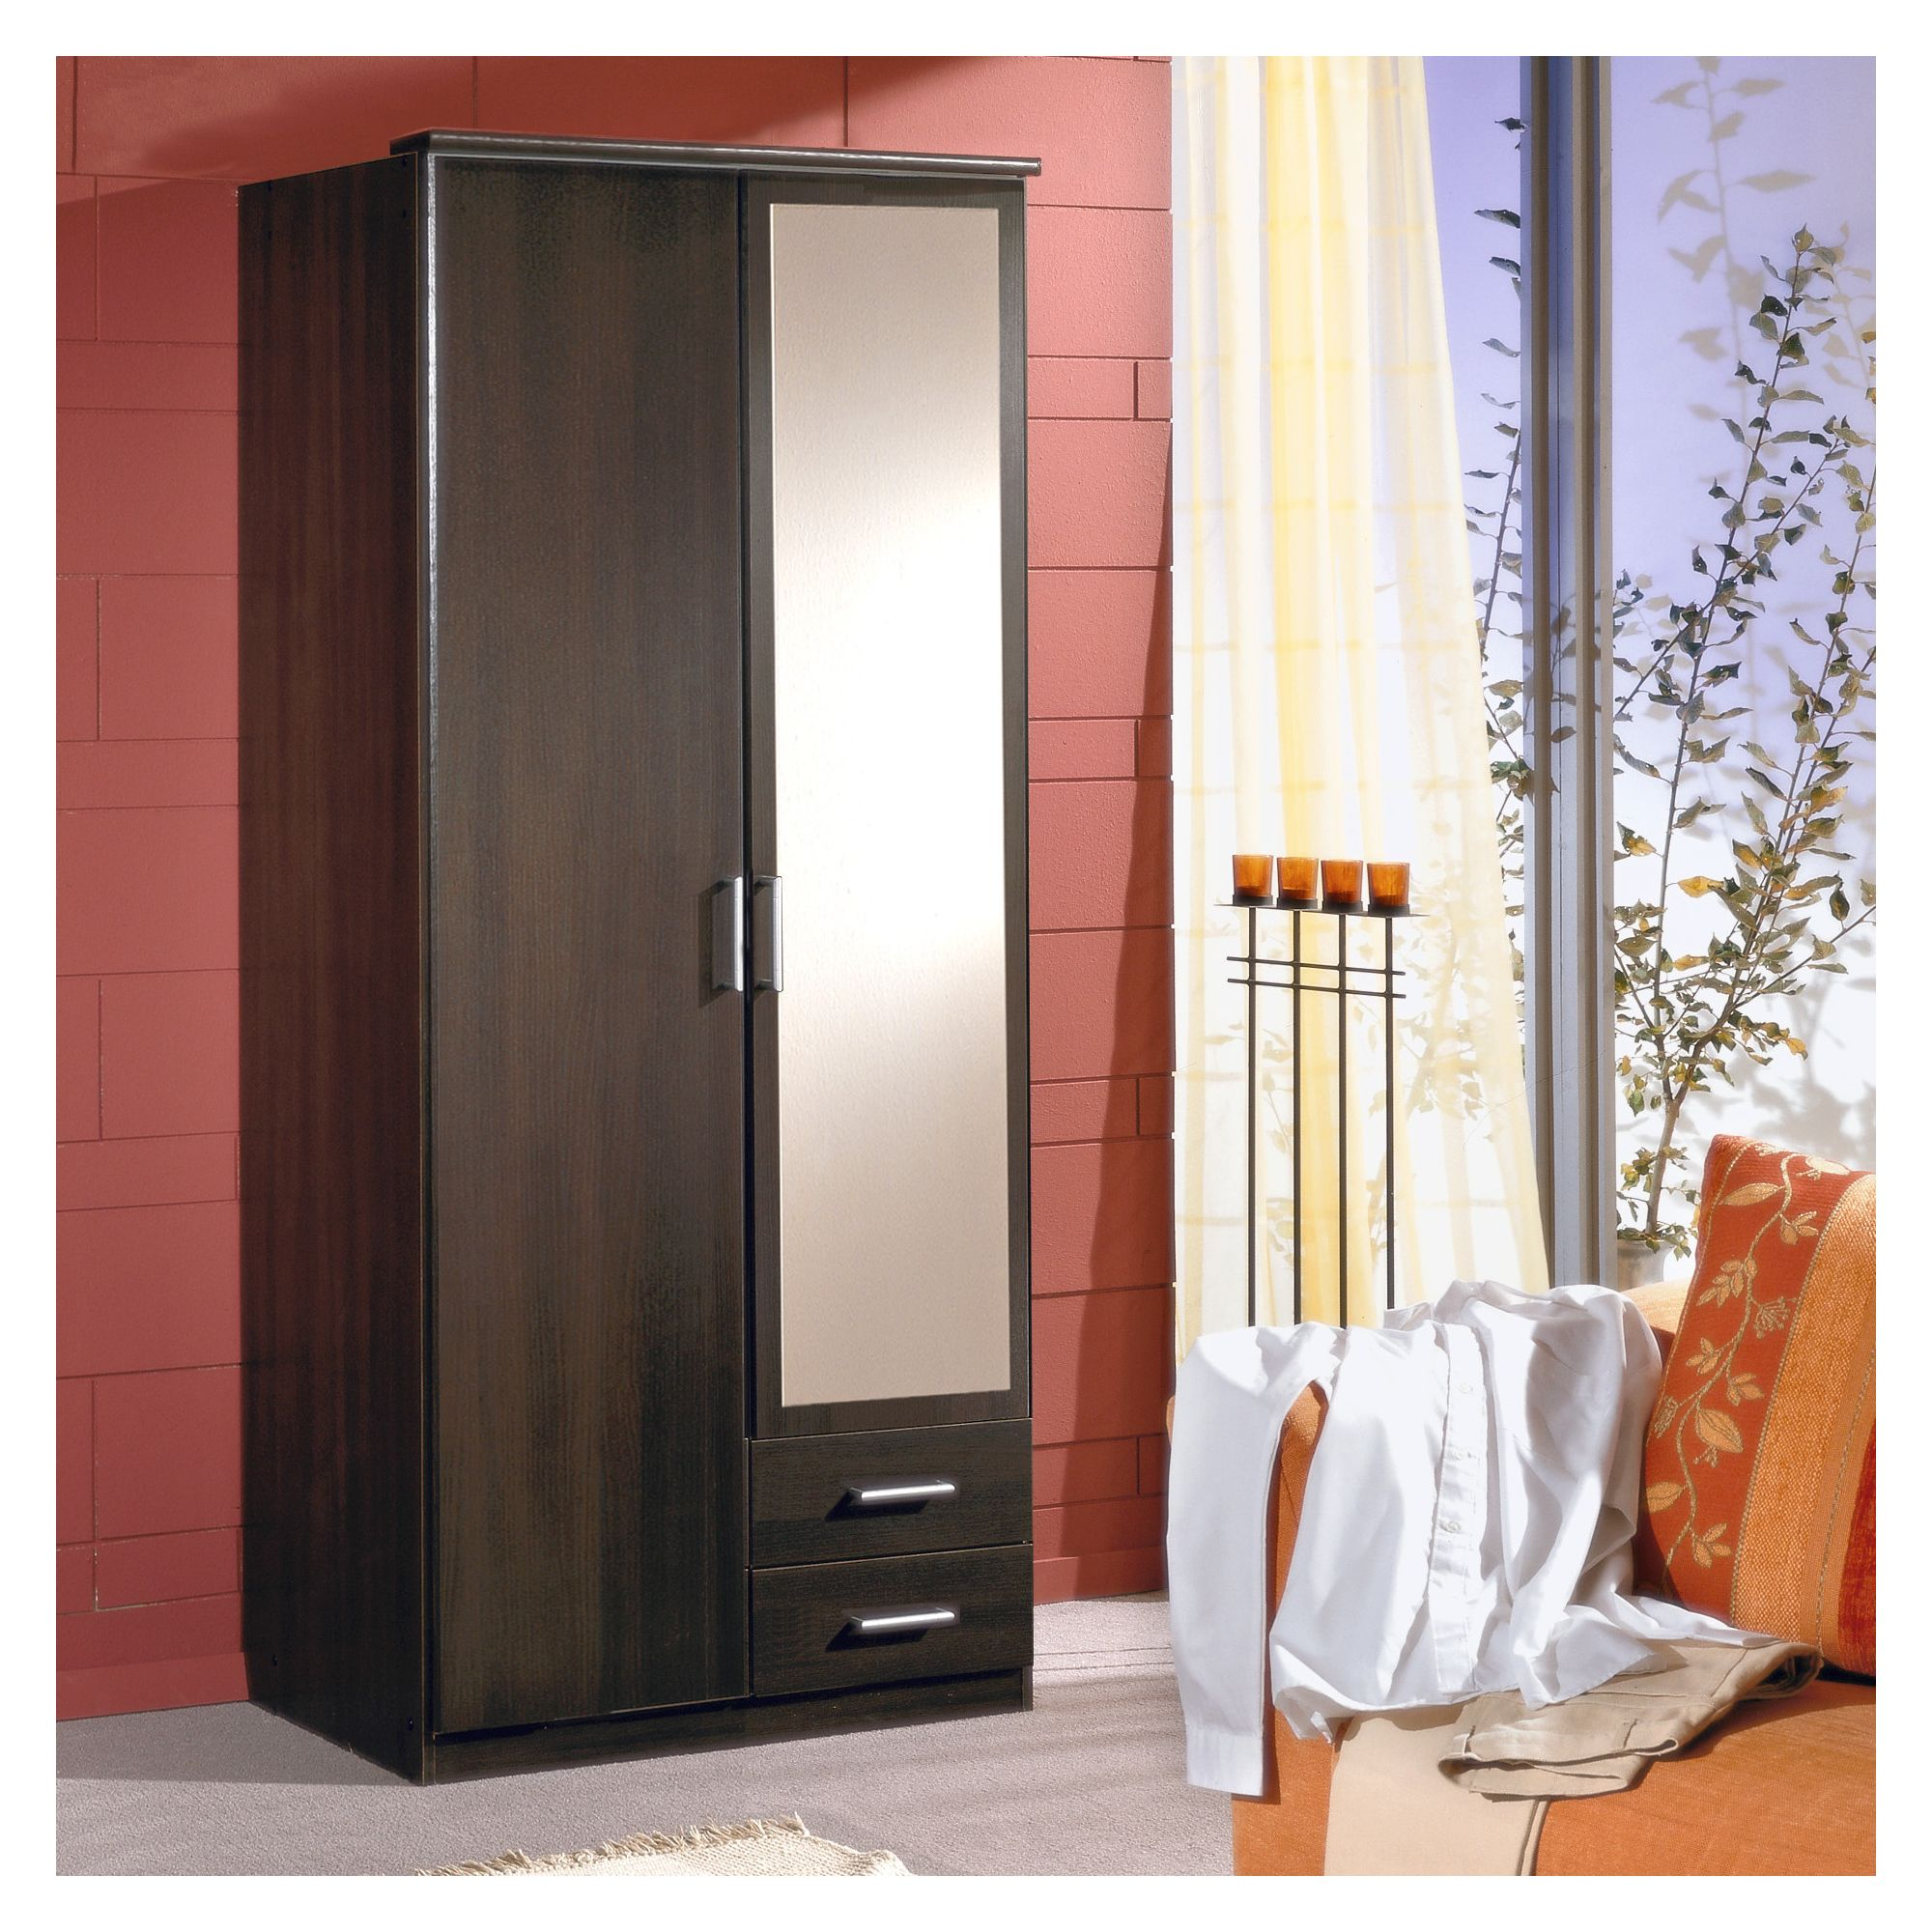 Amos Mann furniture Venice 2 Door 2 Drawer Wardrobe - Wenge at Tesco Direct